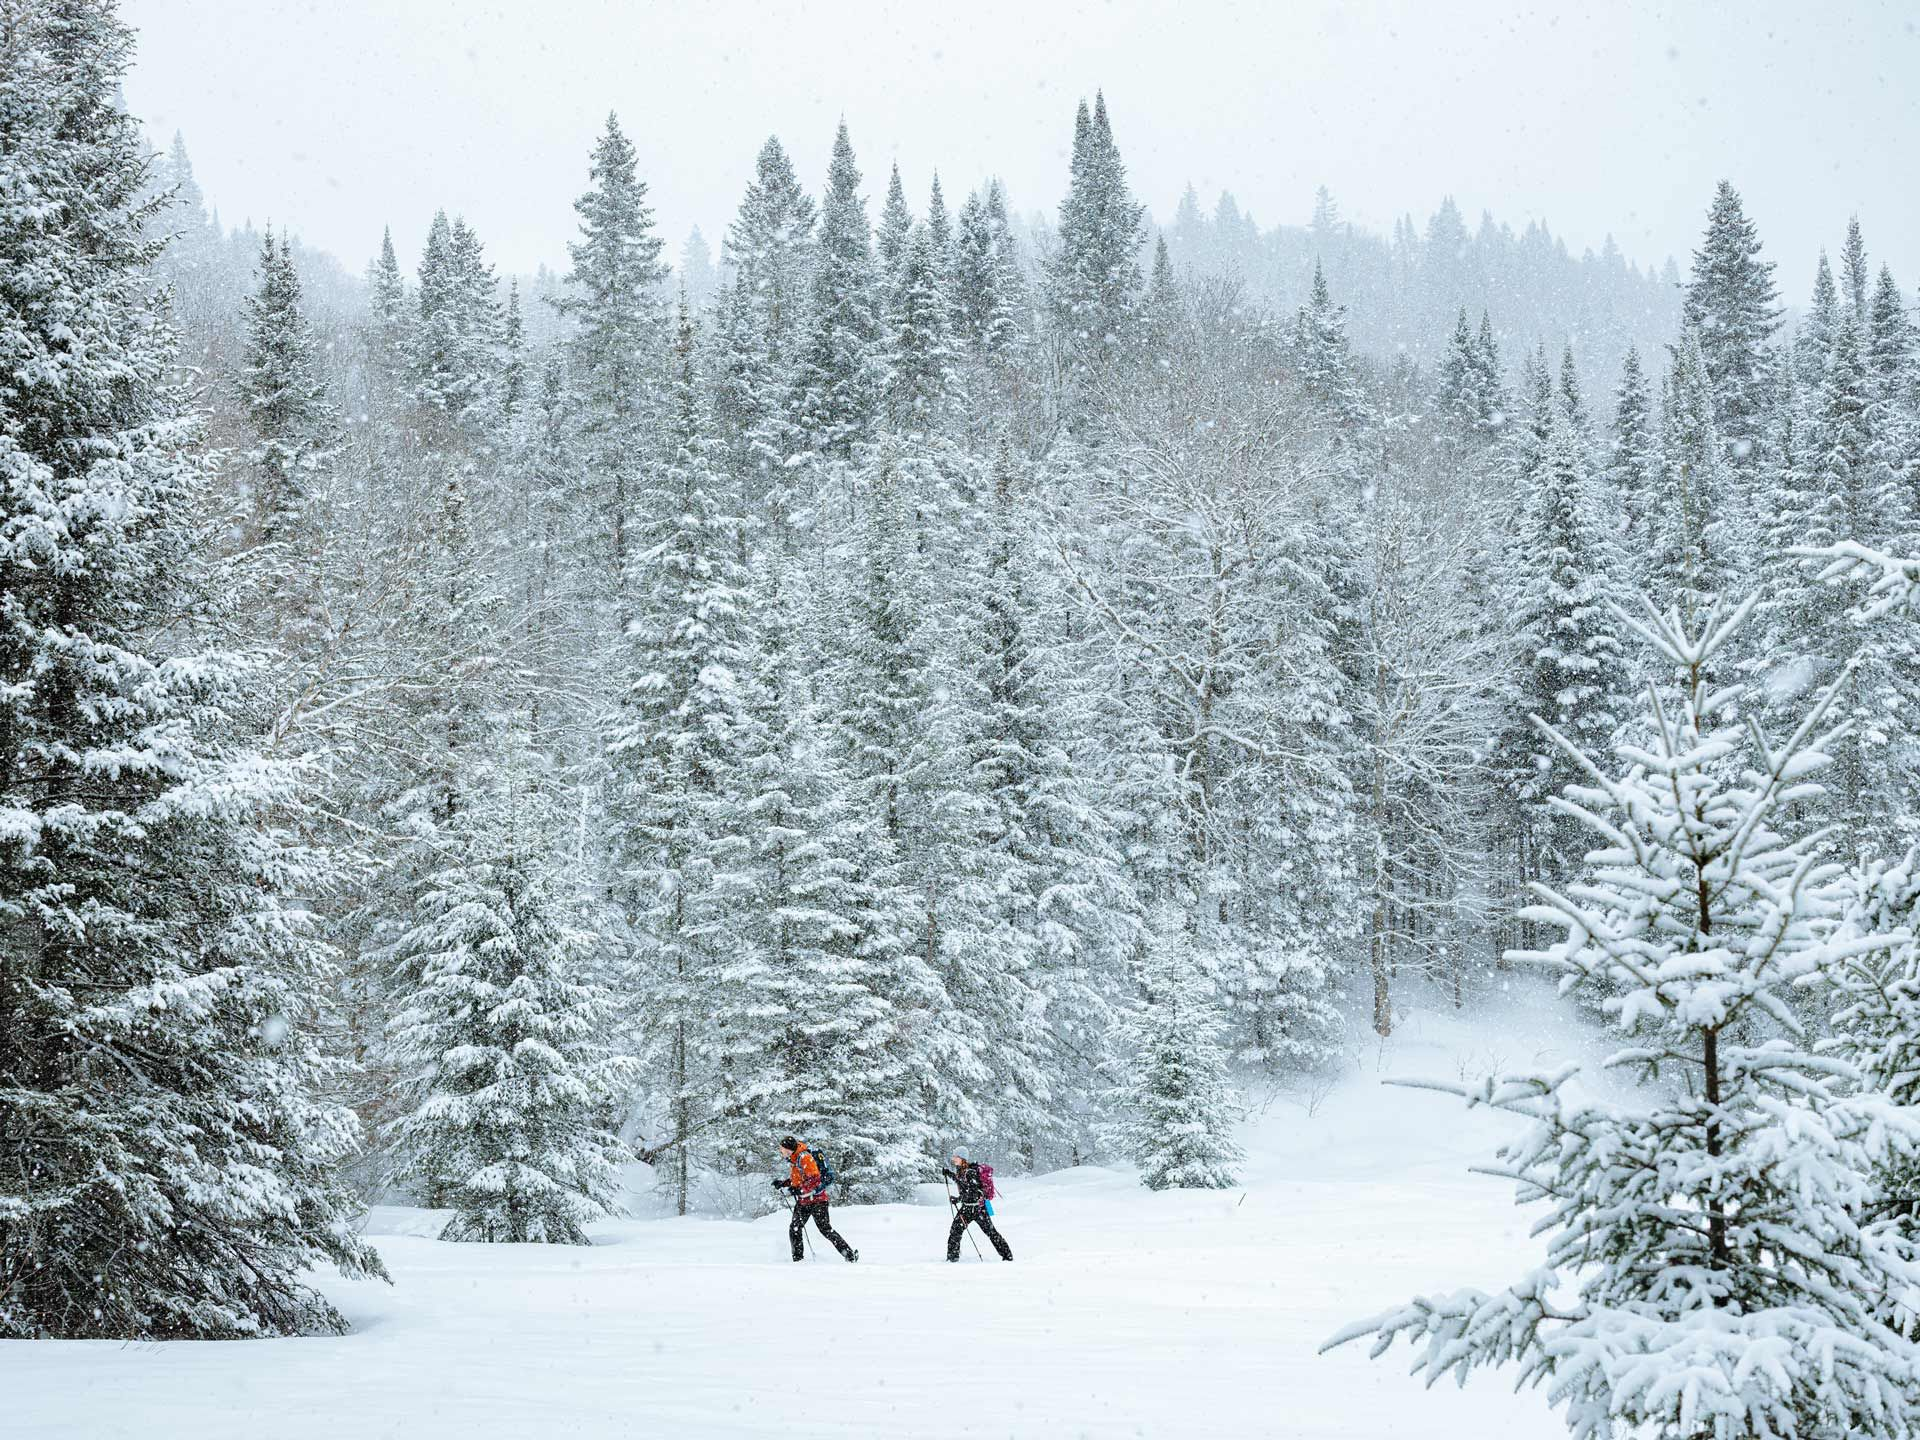 Sail sports gear photographed by Alexi Hobbs of two people cross-country skiing in between tall pine trees in the snow